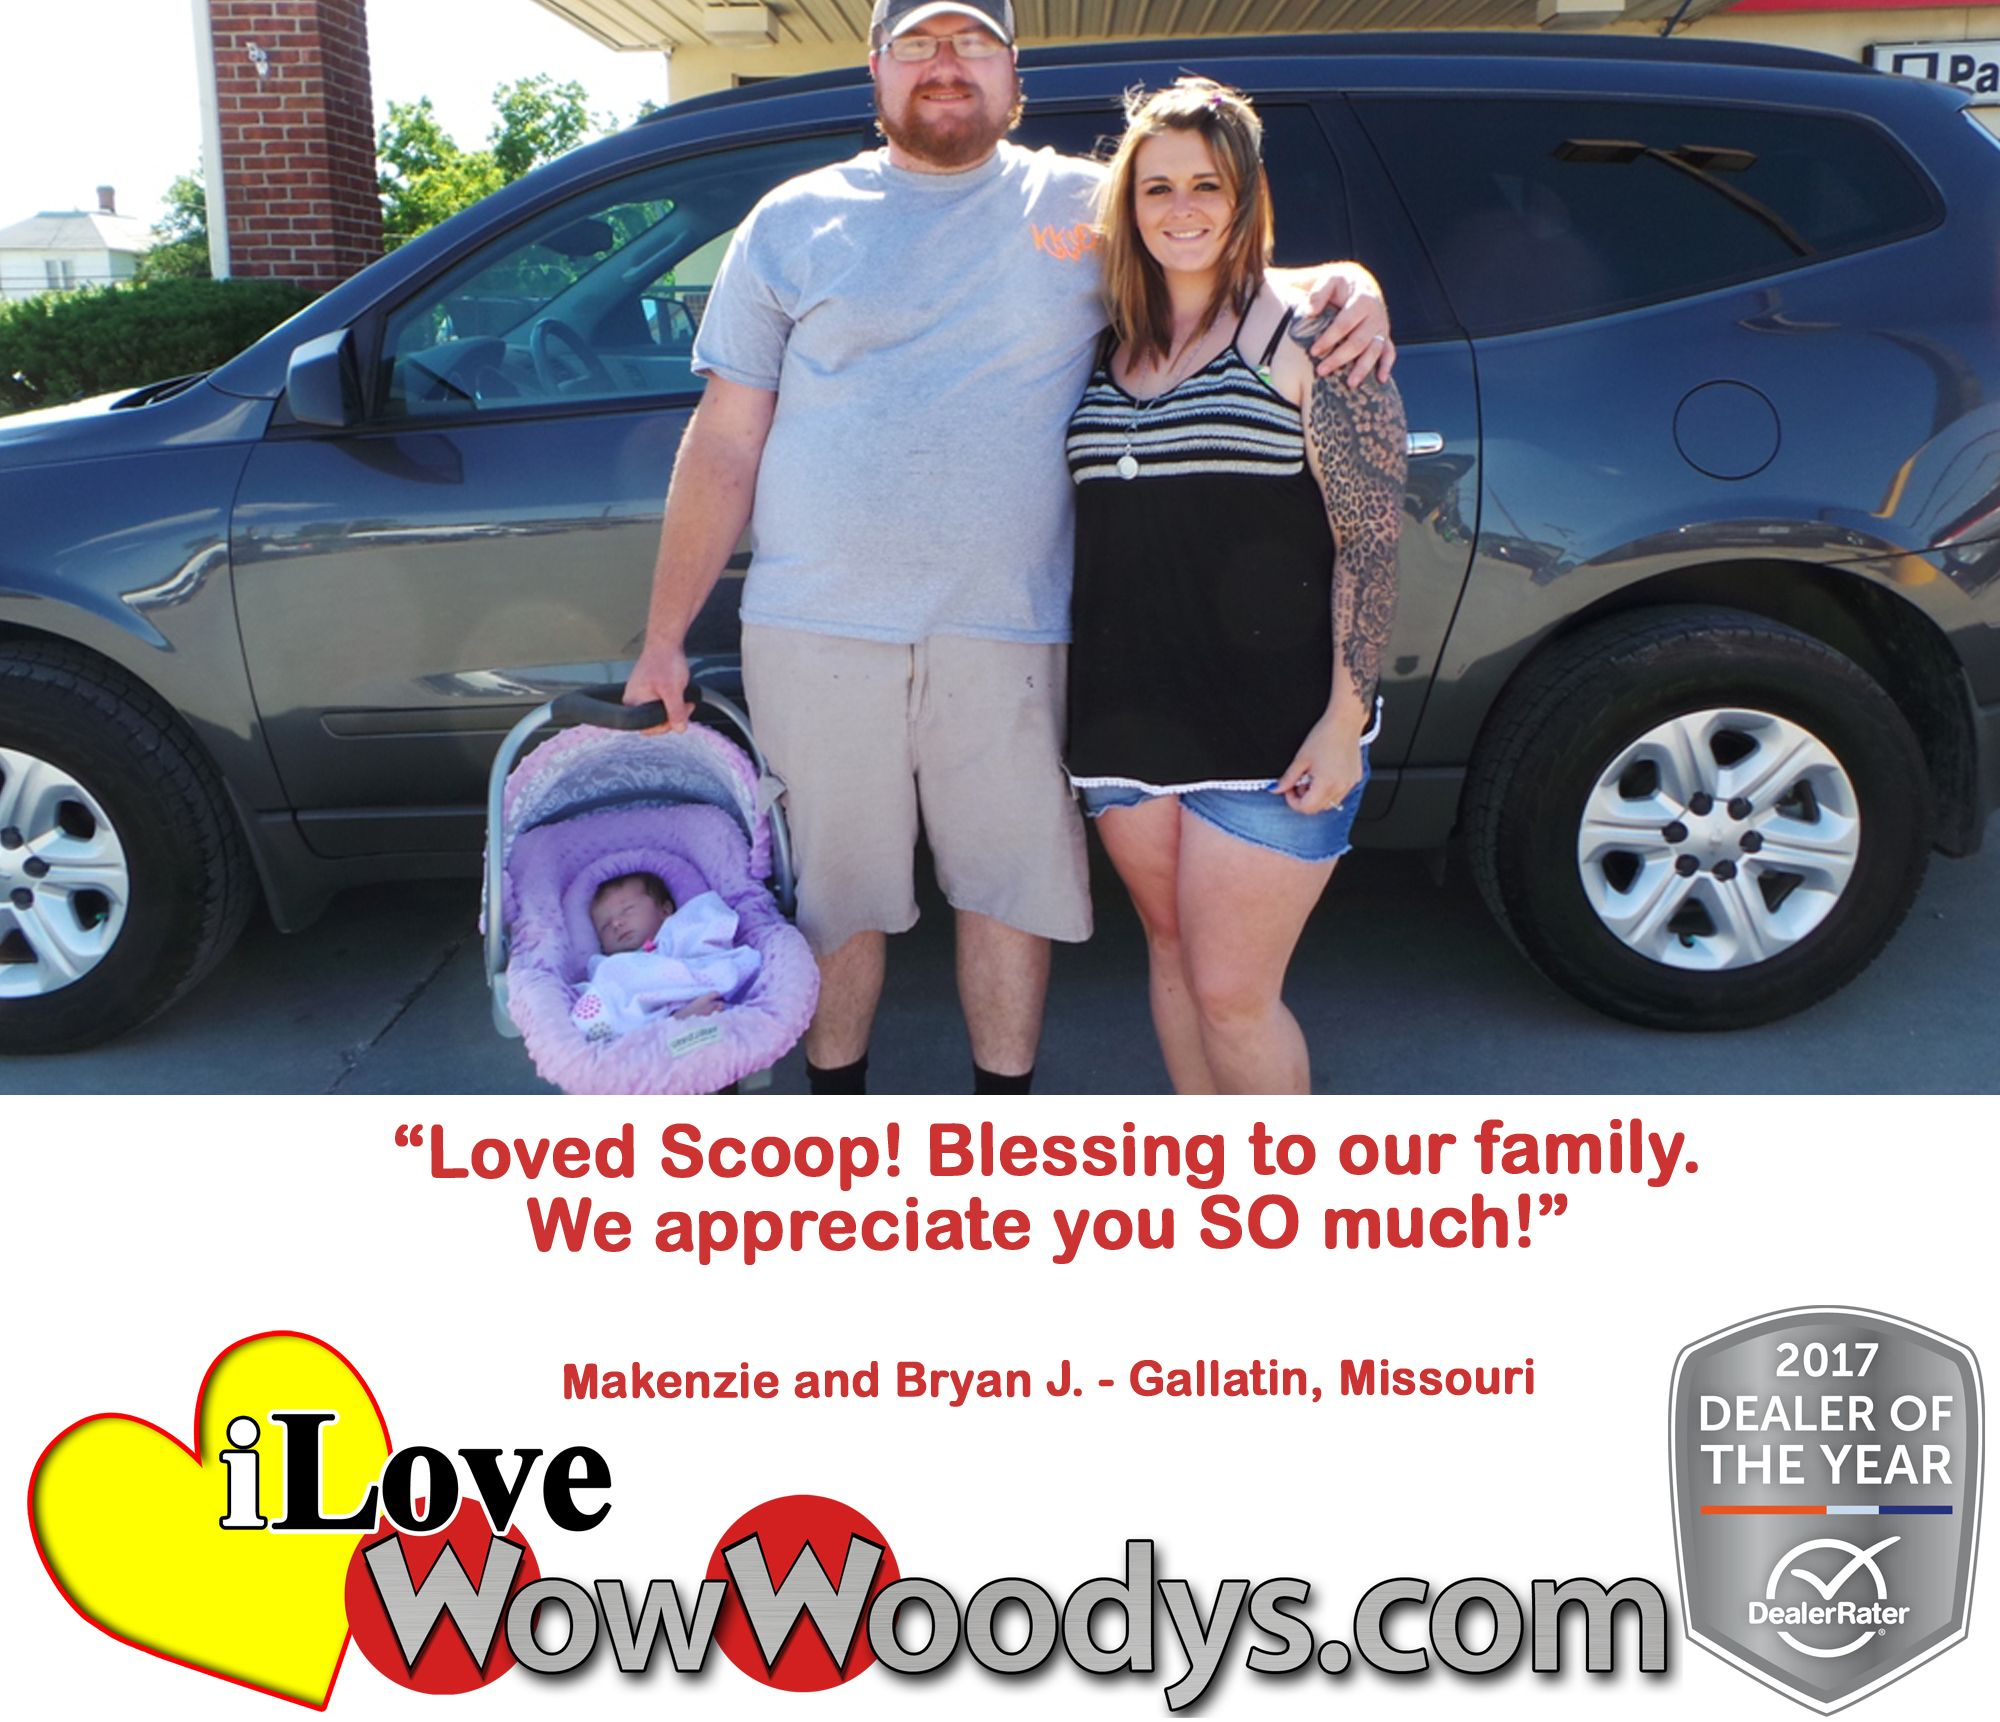 Loved Scoop Blessing To Our Family We Appreciate You So Much